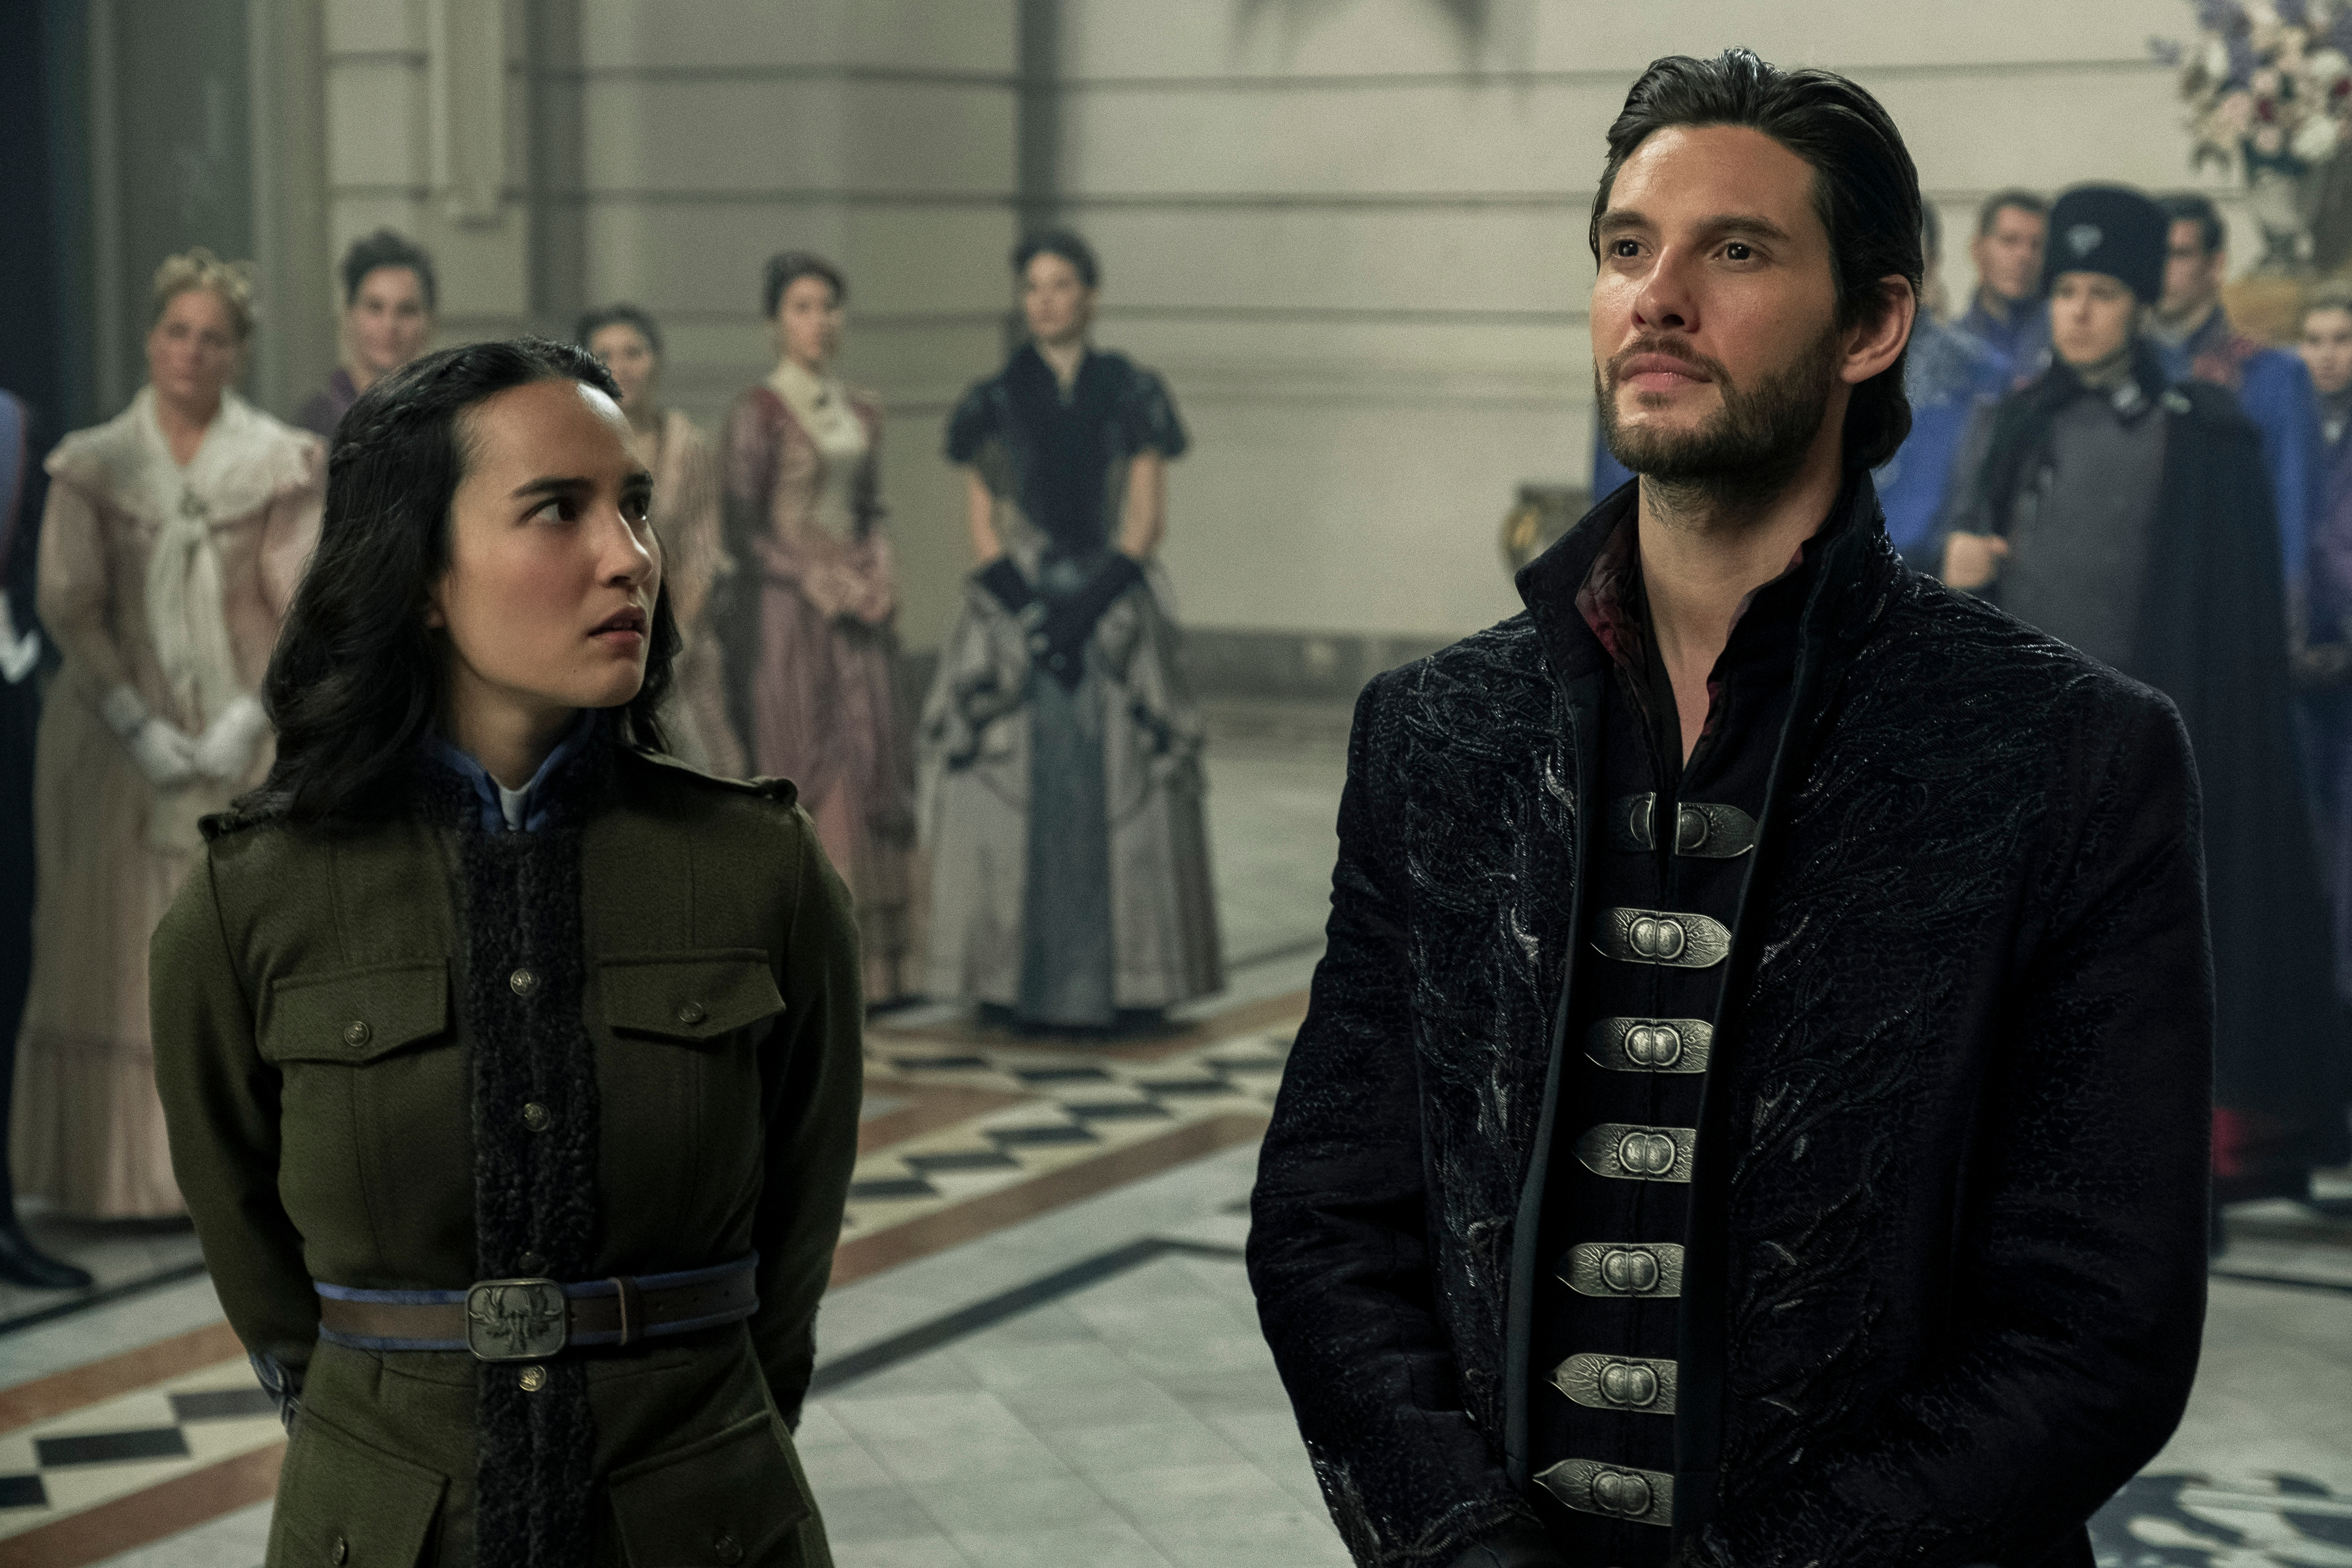 Shadow And Bone 1x03 The Making at the Heart of the World: 5 Scenes You Can't Miss